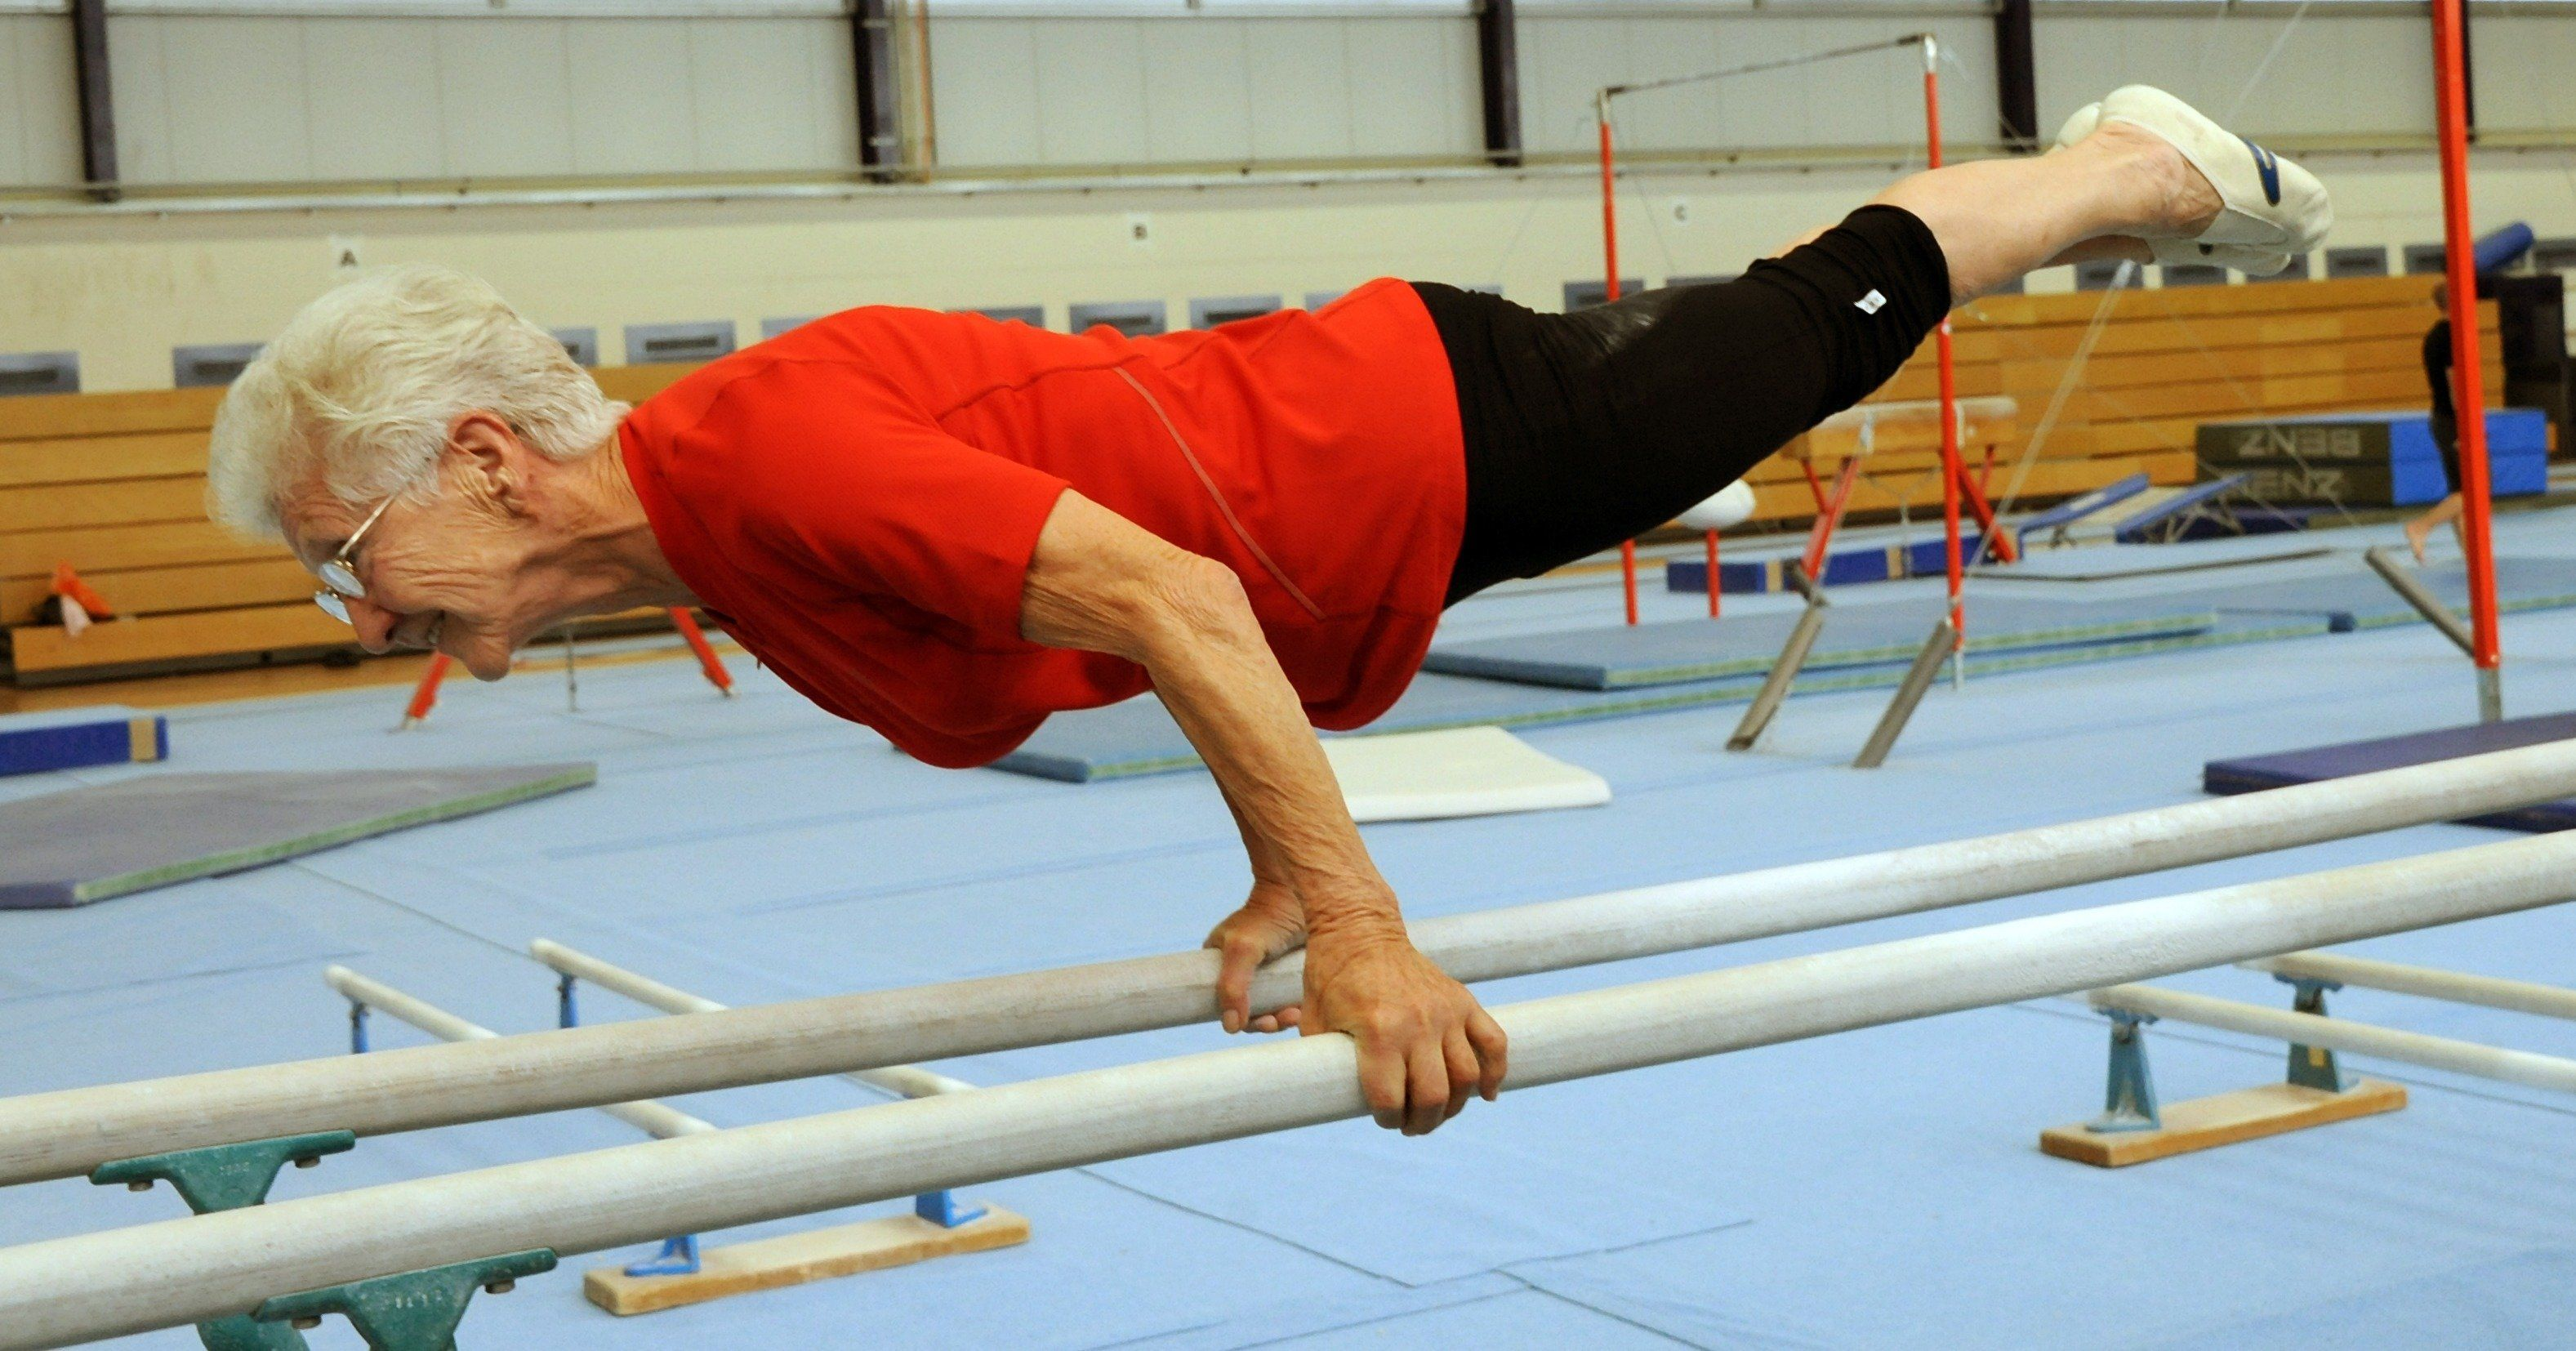 The 86-year-old Johanna Quaas, the oldest active gymnast in the world according to ??the Guinness Book of World Records, attends a weekly exercises on uneven bars on November 6,  2012 in her hometown Halle, center Germany. The gymnast who celebrates her 87 birthday on November 20 still takes part in competitions. AFP PHOTO/ Waltraud Grubitzsch/GERMANY OUT        (Photo credit should read WALTRAUD GRUBITZSCH/AFP/Getty Images)